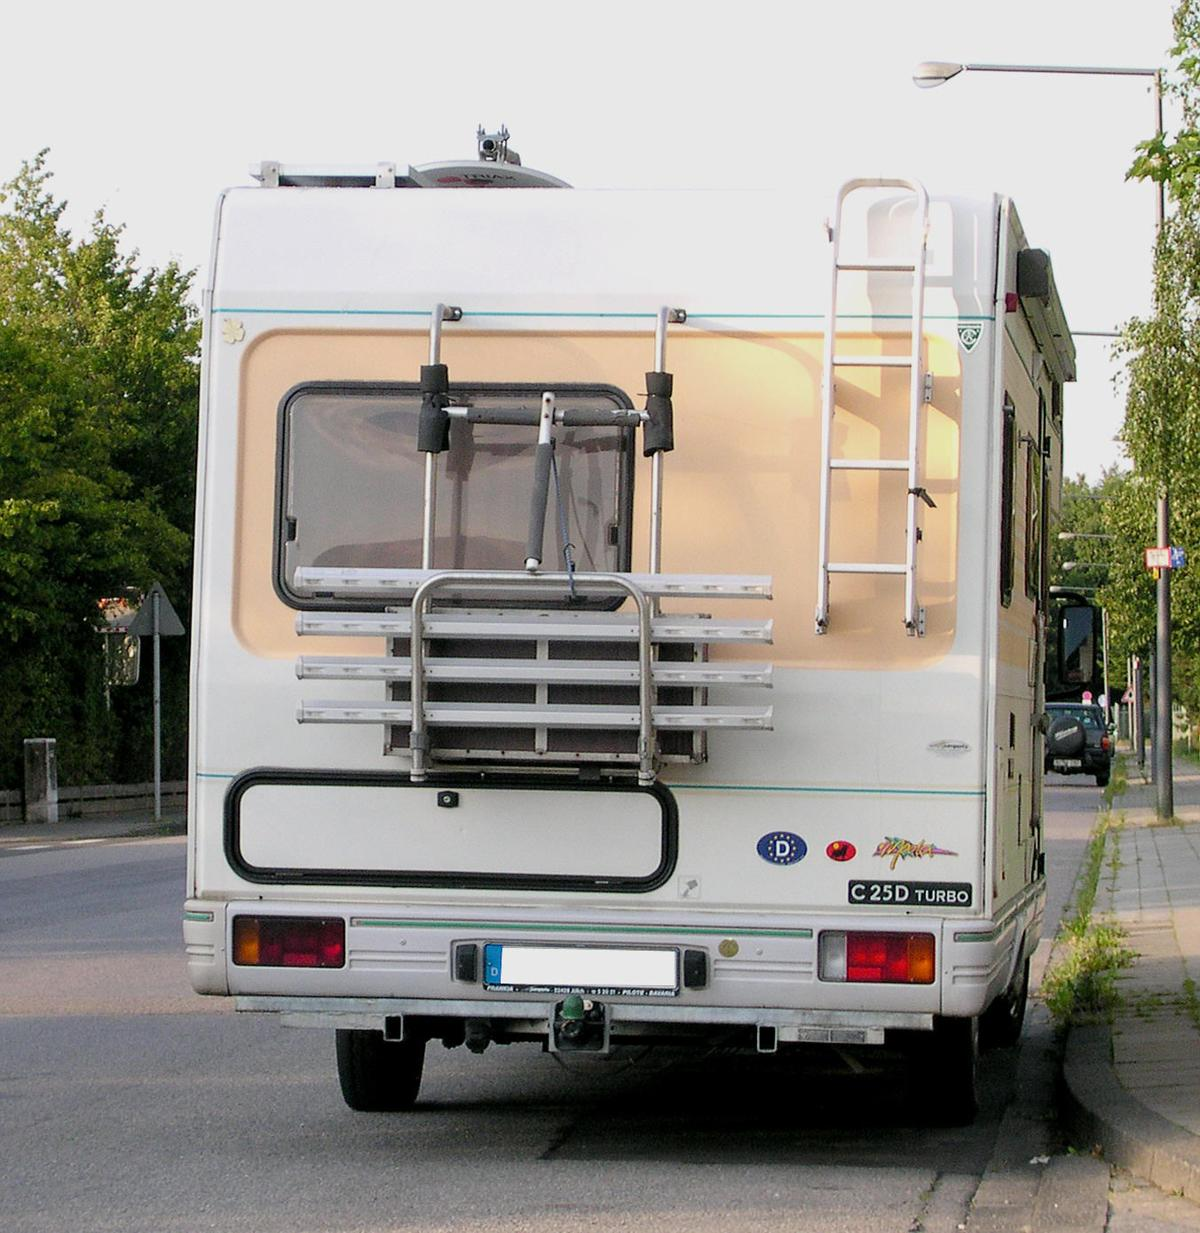 Recreational Vehicle: Having A Bit Of Fun With Names Of RVs